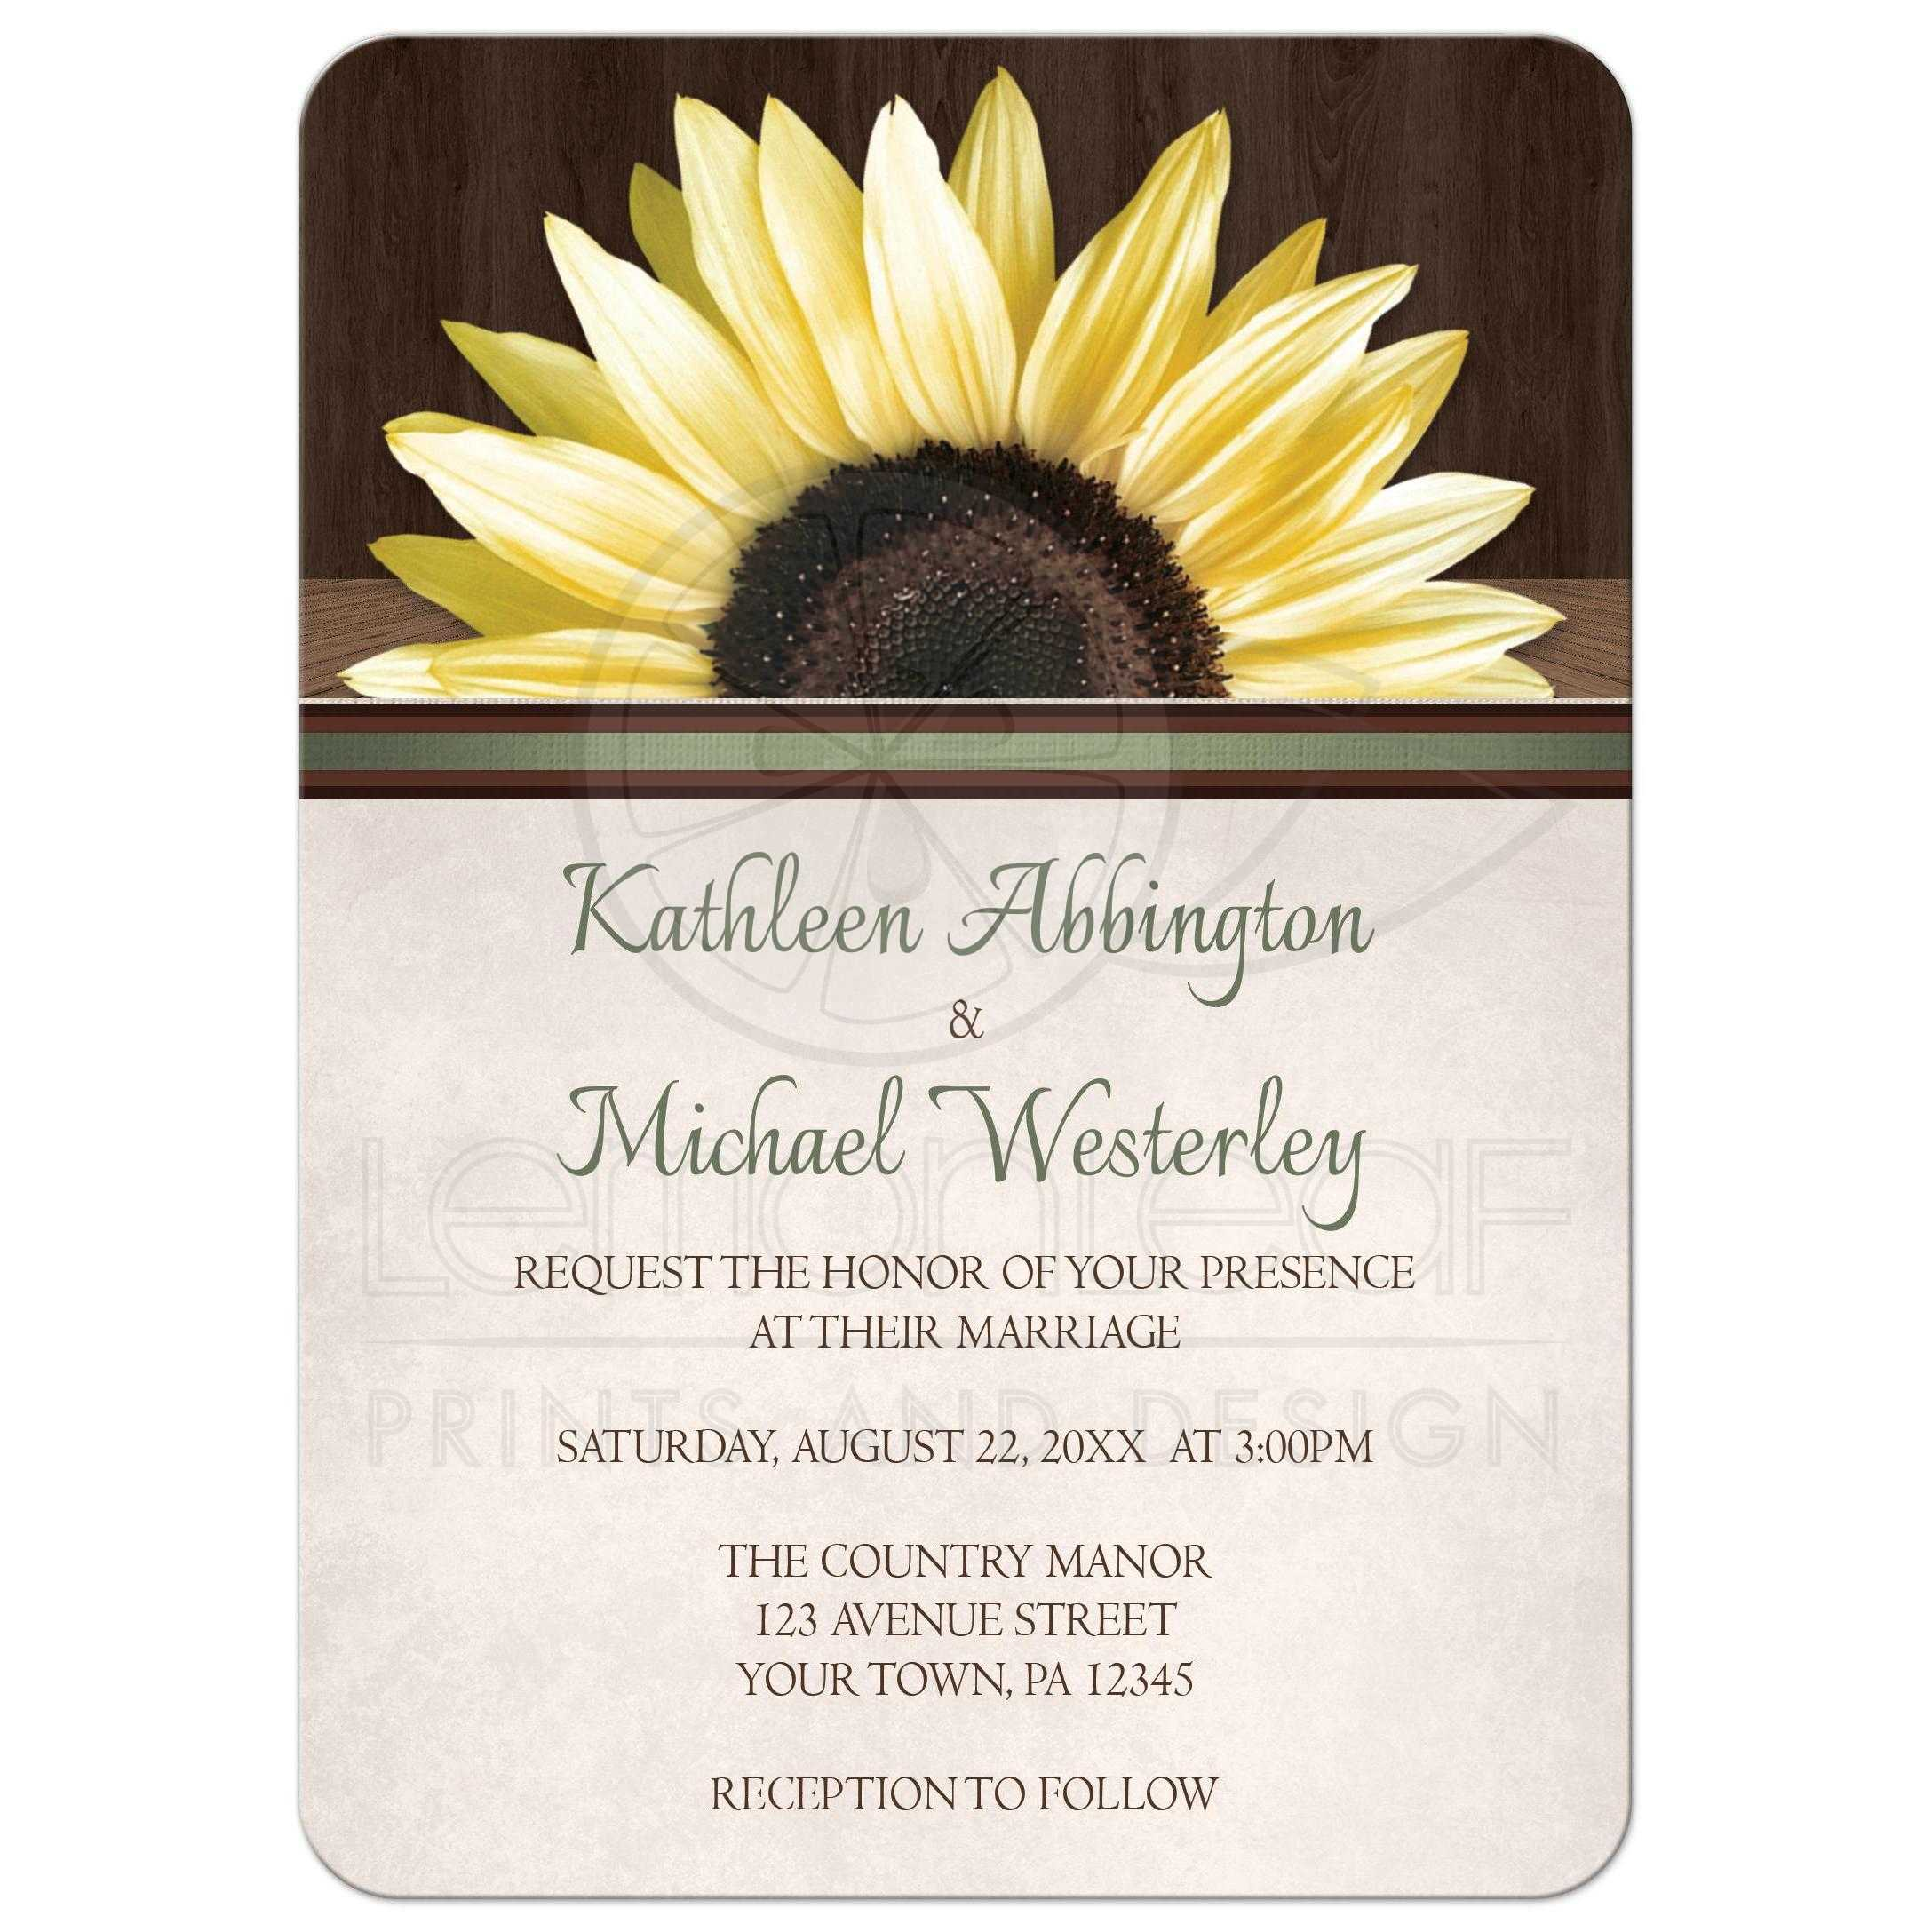 Invitations Country Sunflower Over Wood Rustic - Sunflower wedding invitations templates